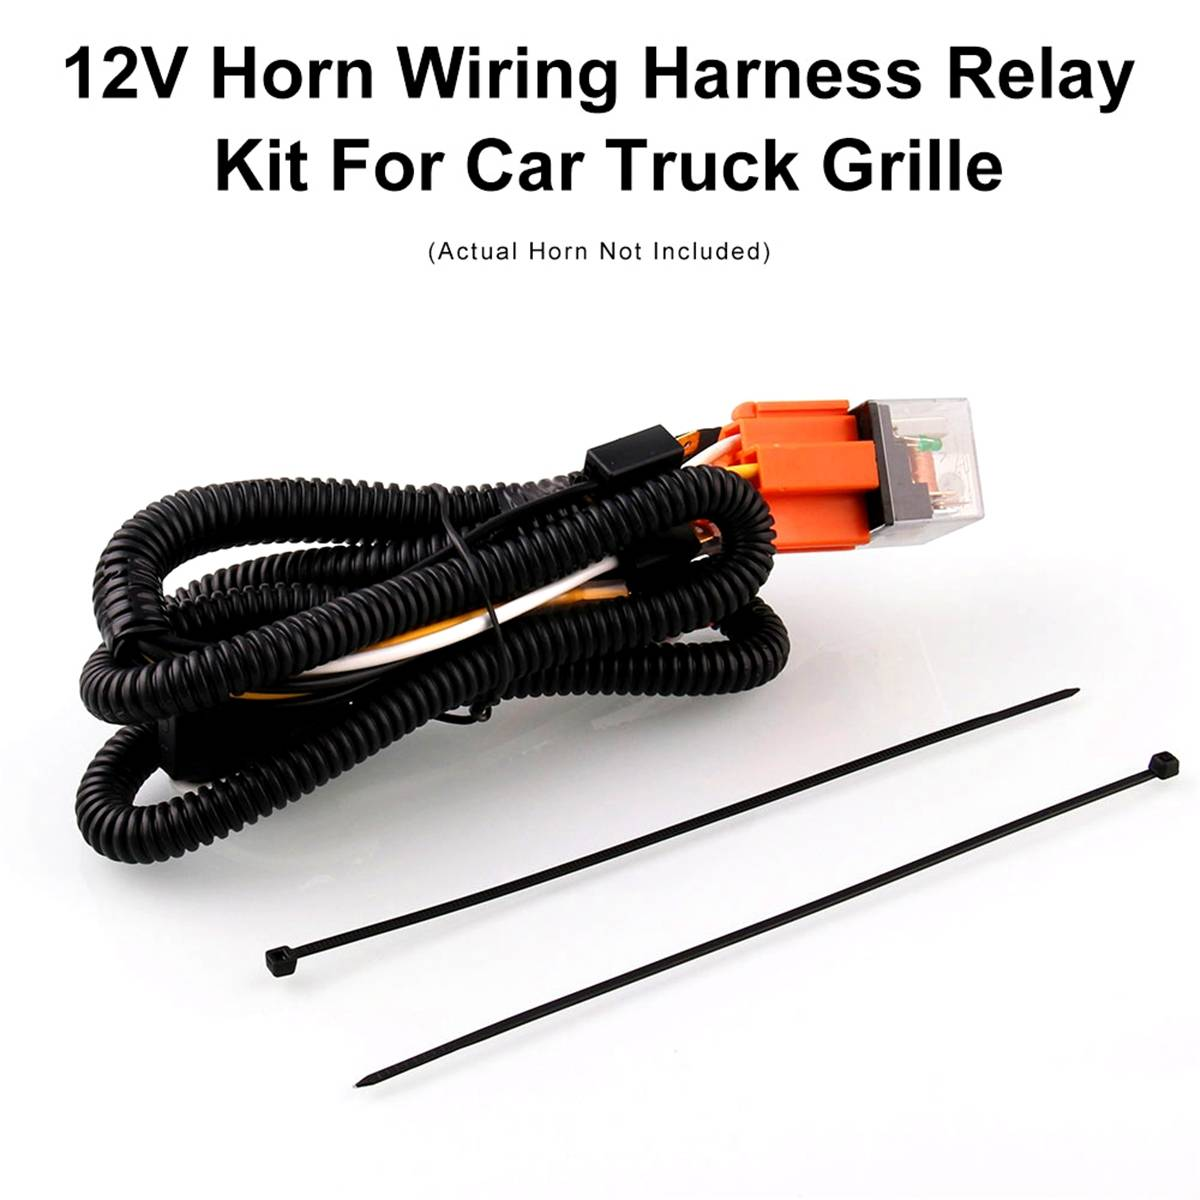 universal 12V Horn cable Relay For Grille Mount Blast Tone Horns motorcycle horn wire Wiring Harness Kit Car Truck Relay Fuse